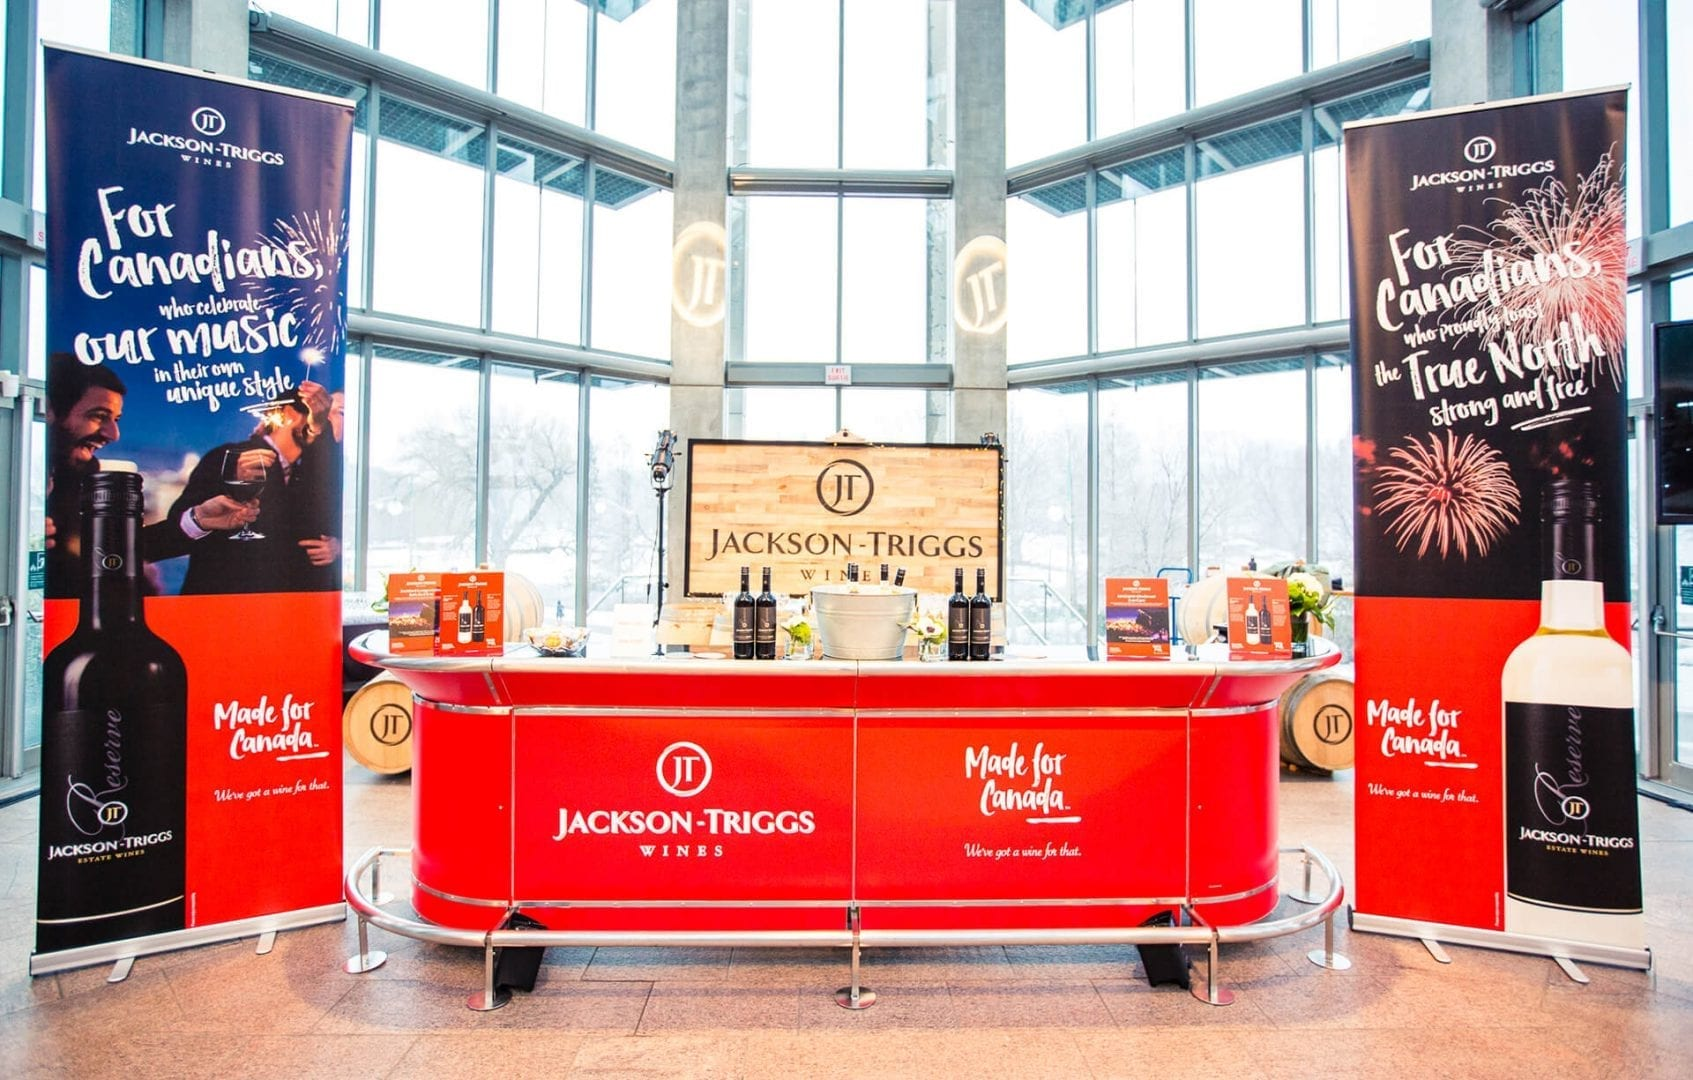 Jackson-Triggs Made For Canada Junos 2017 event bar and banners